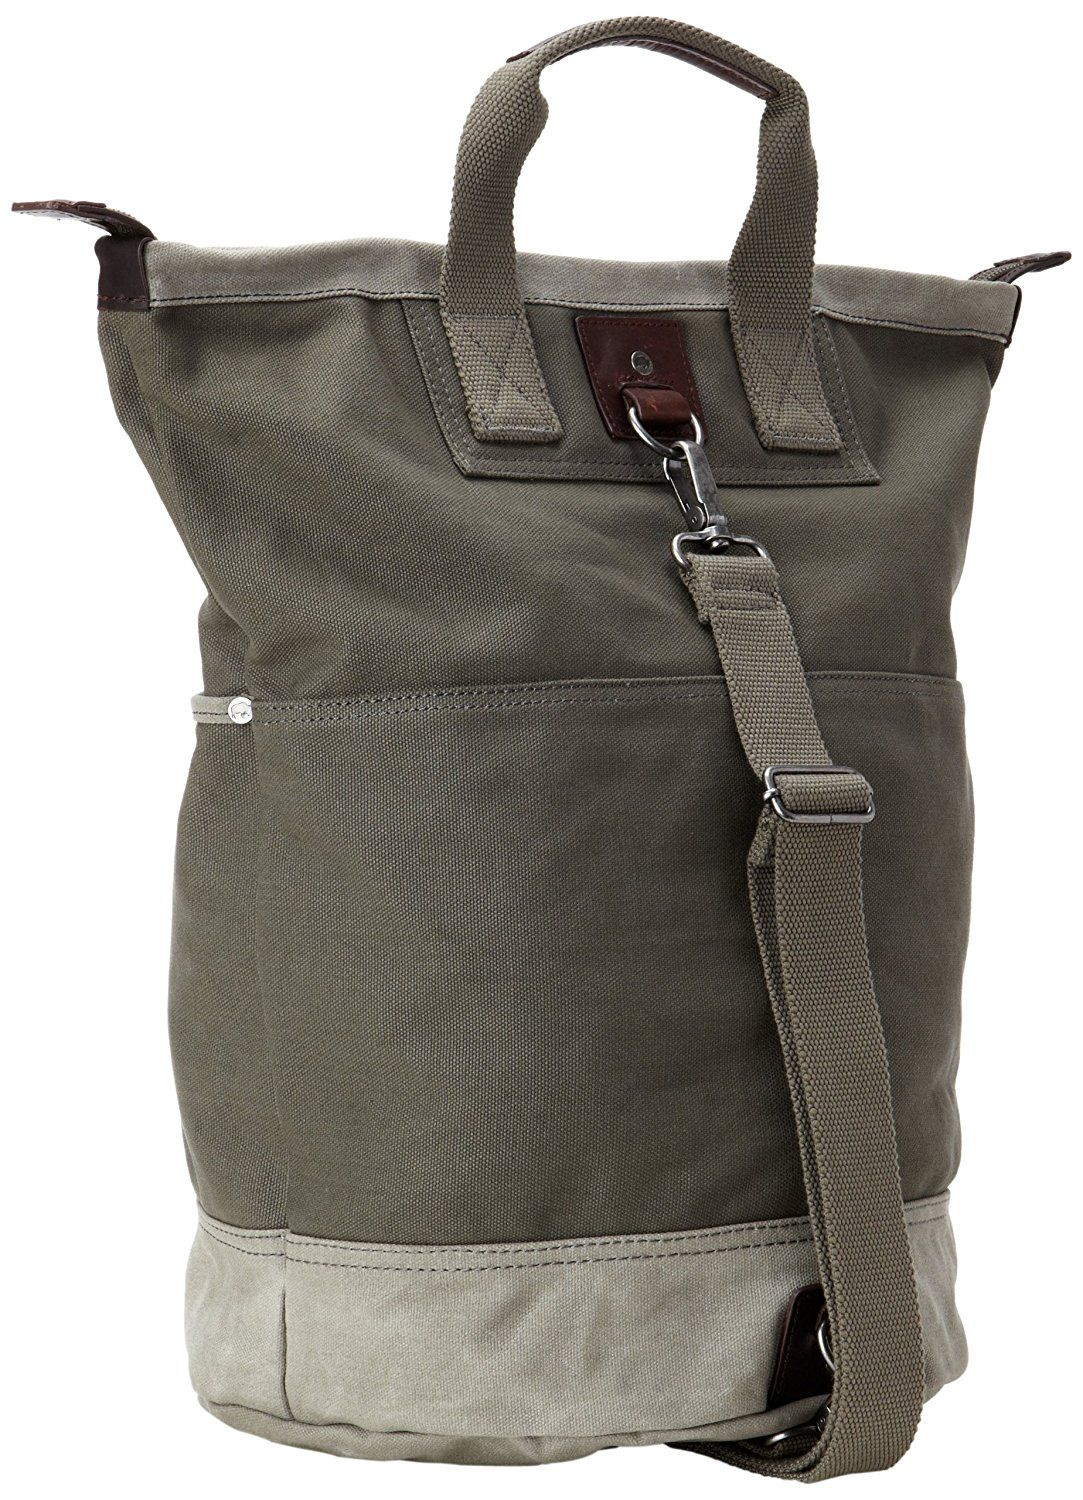 a3b3725645b Amazon.com  Mountain Khakis Adult Utility Bag